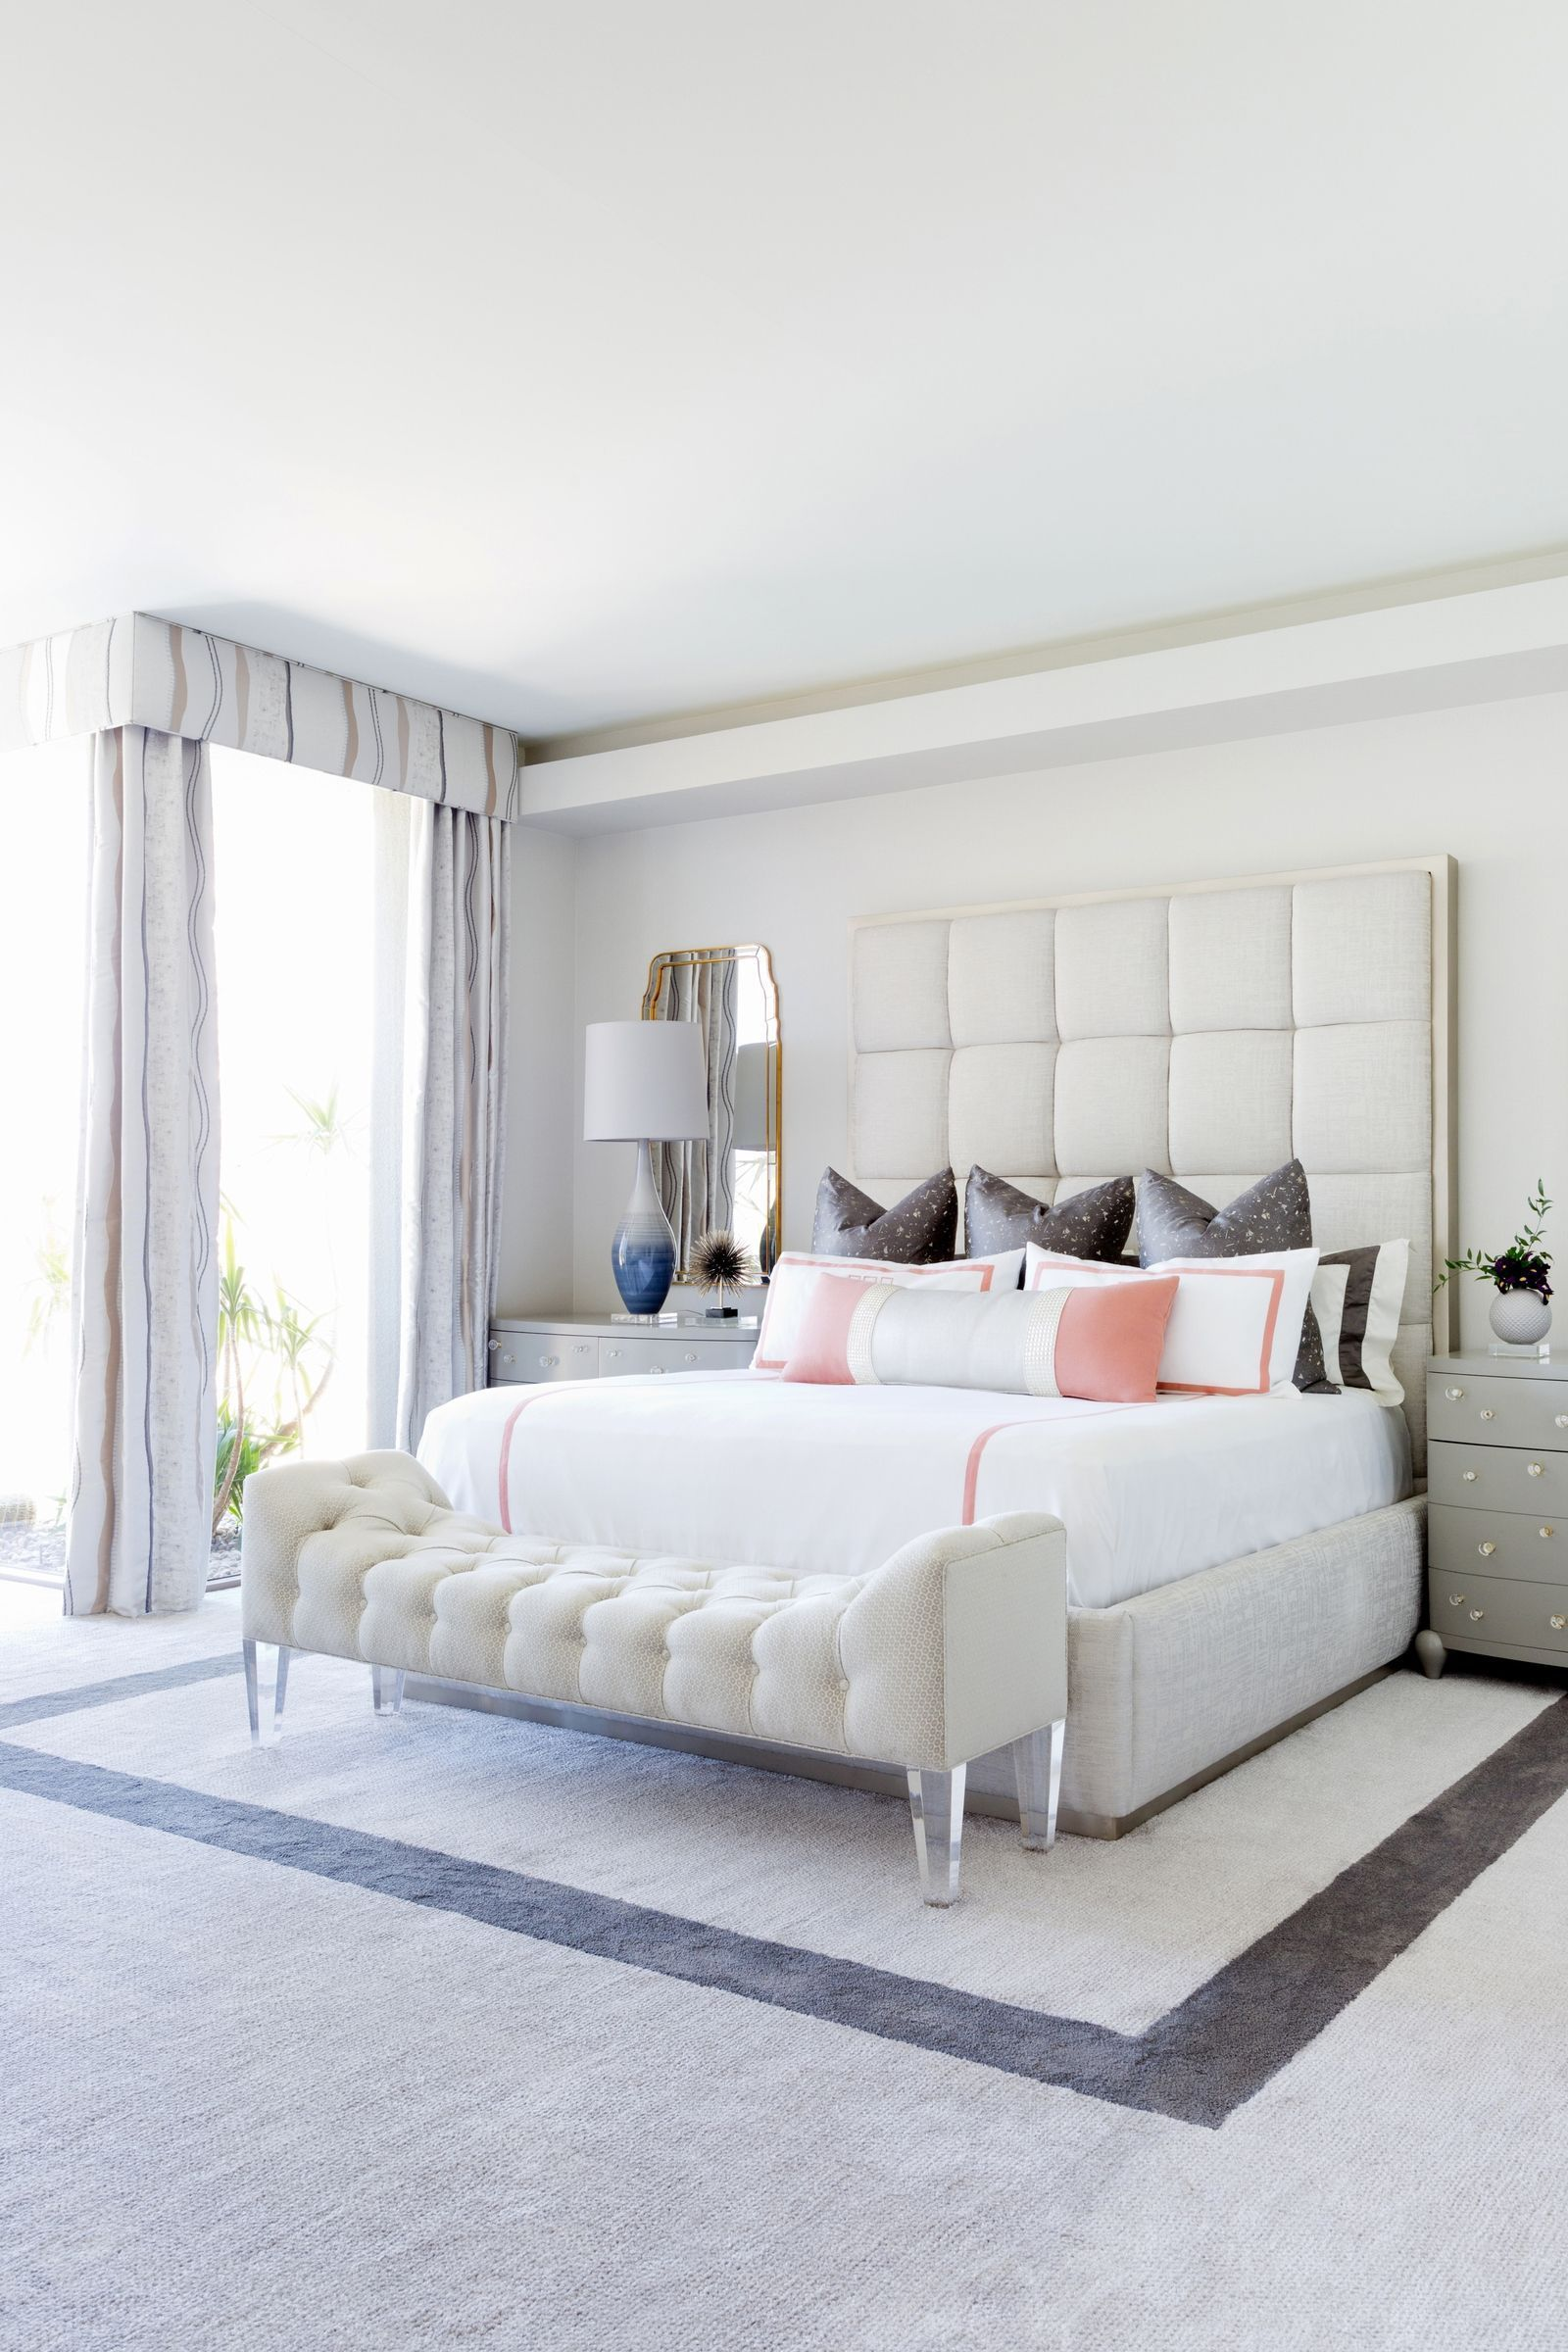 From White Wood Flooring Through To White Tile Flooring In This Home Flooring Pros Guide Upholstered Panel Bed Upholstered Platform Bed Gray Tufted Headboard